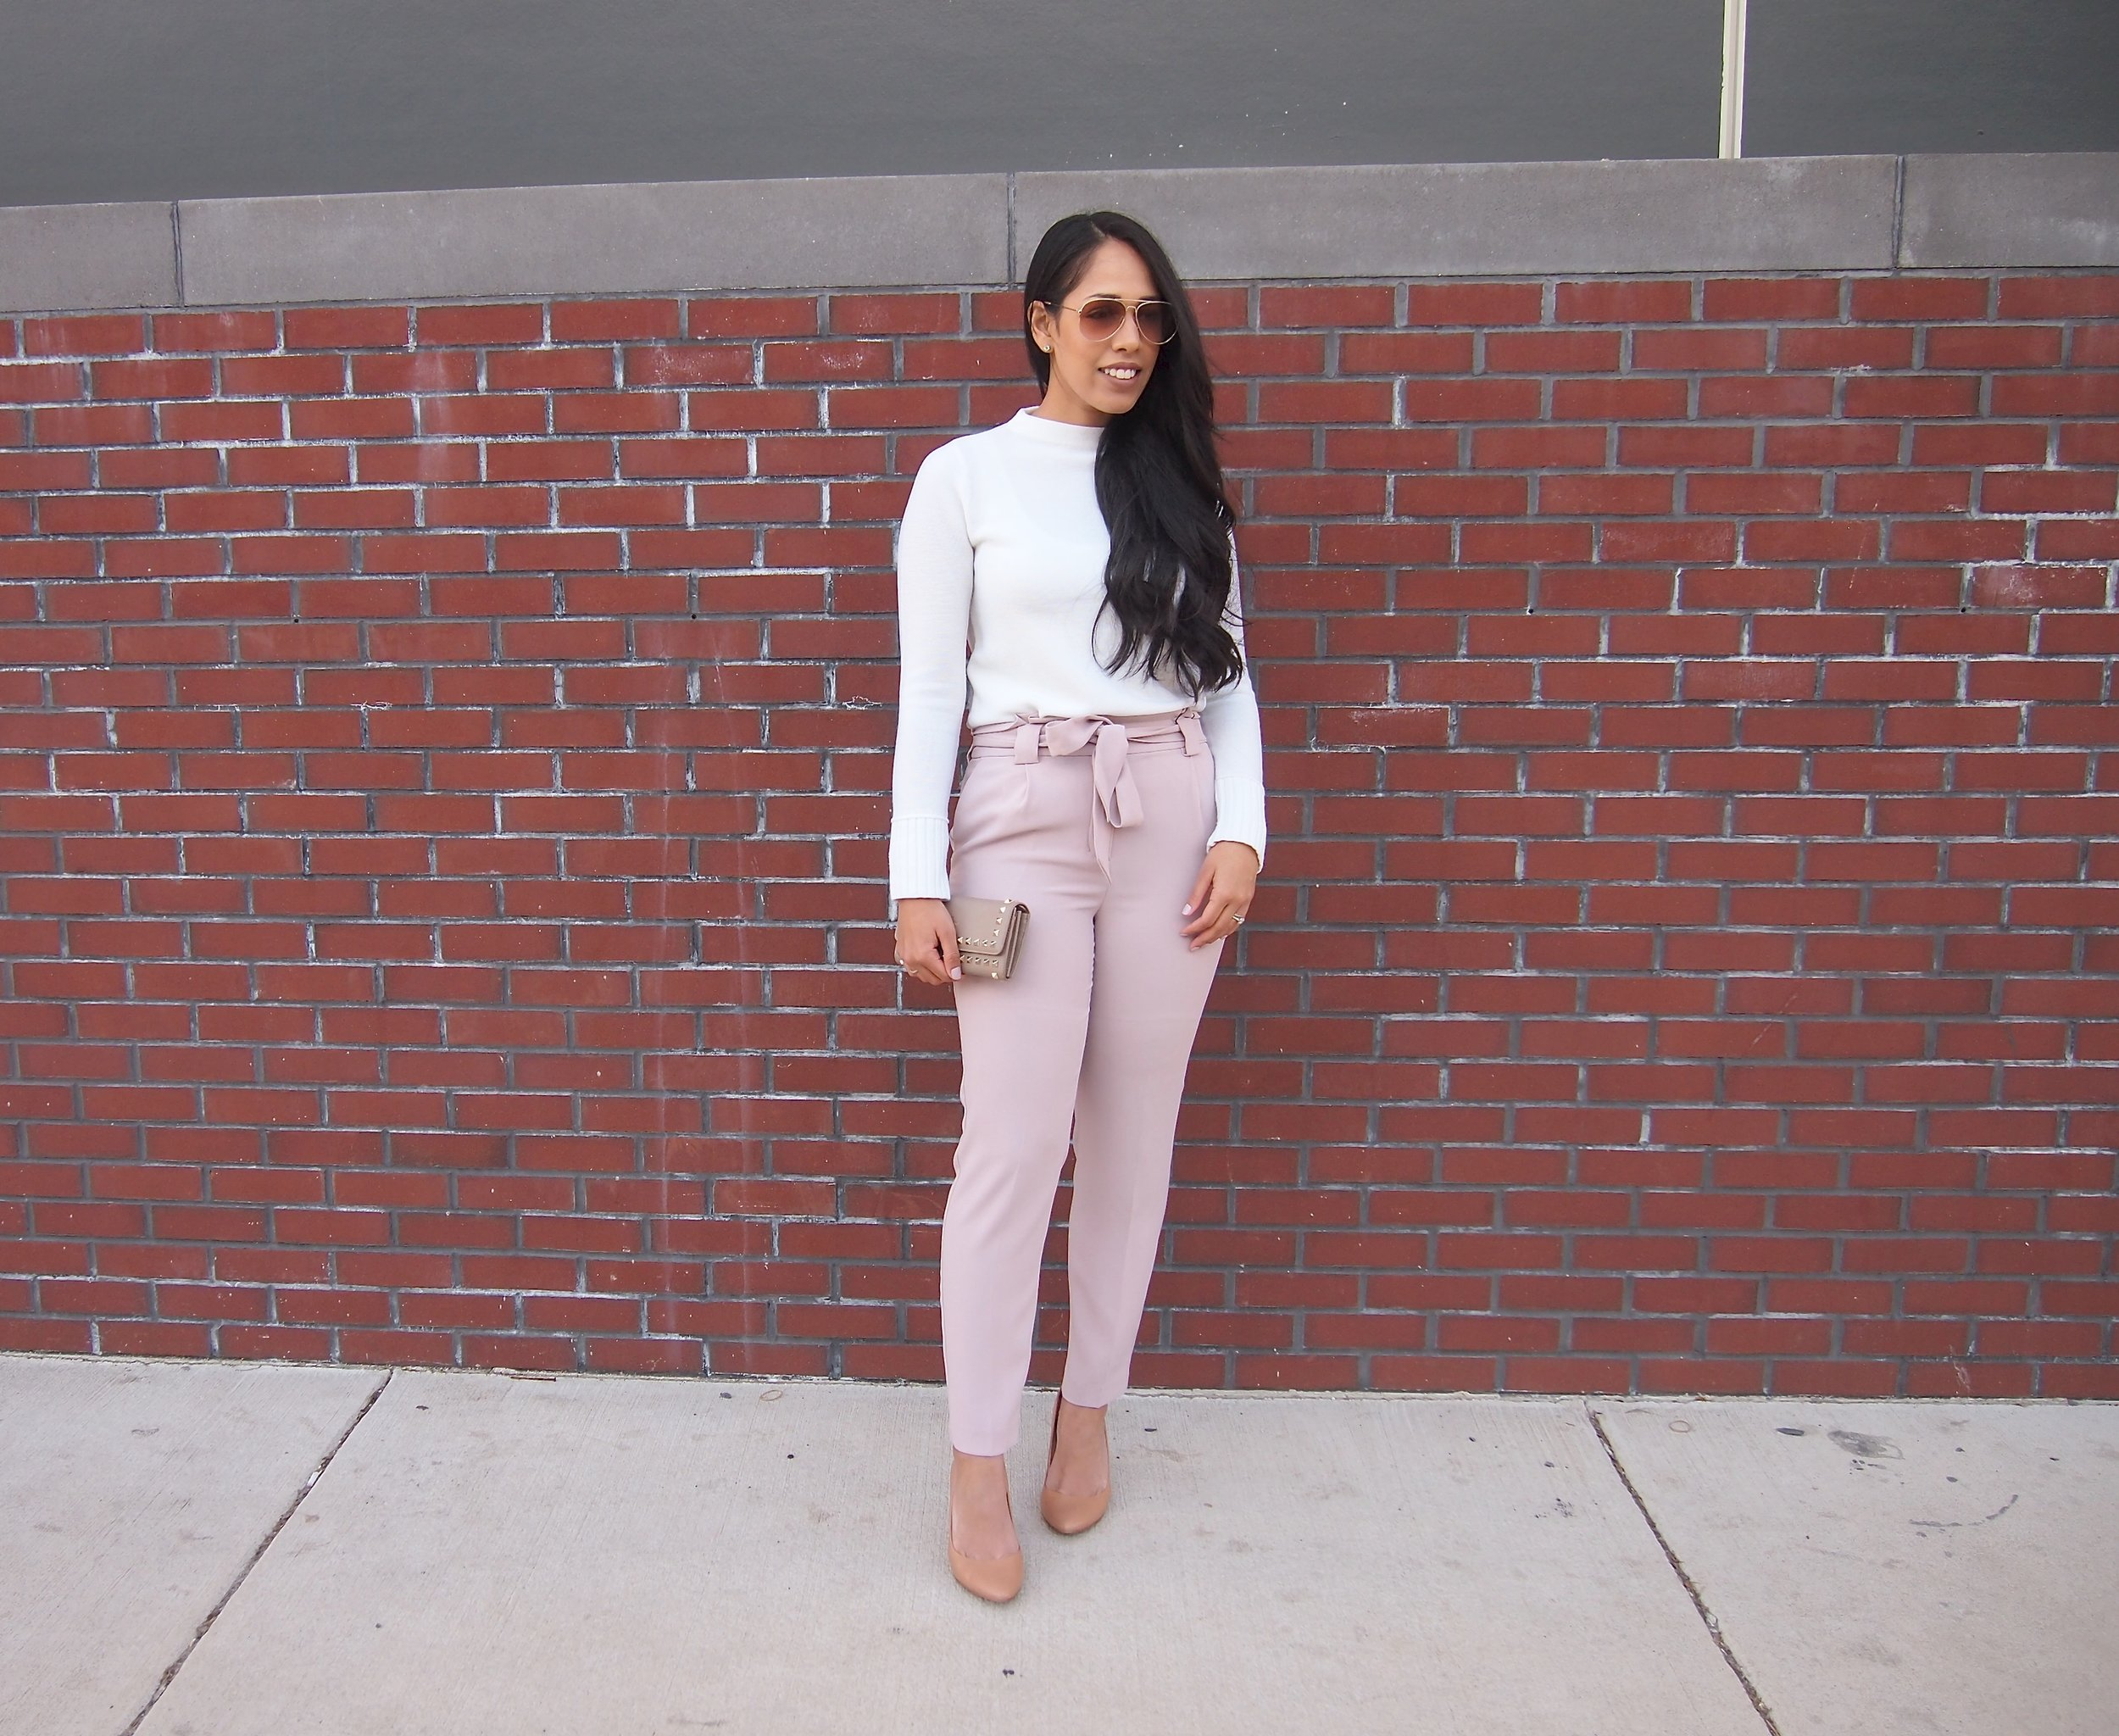 styling-high-waisted-pants-express